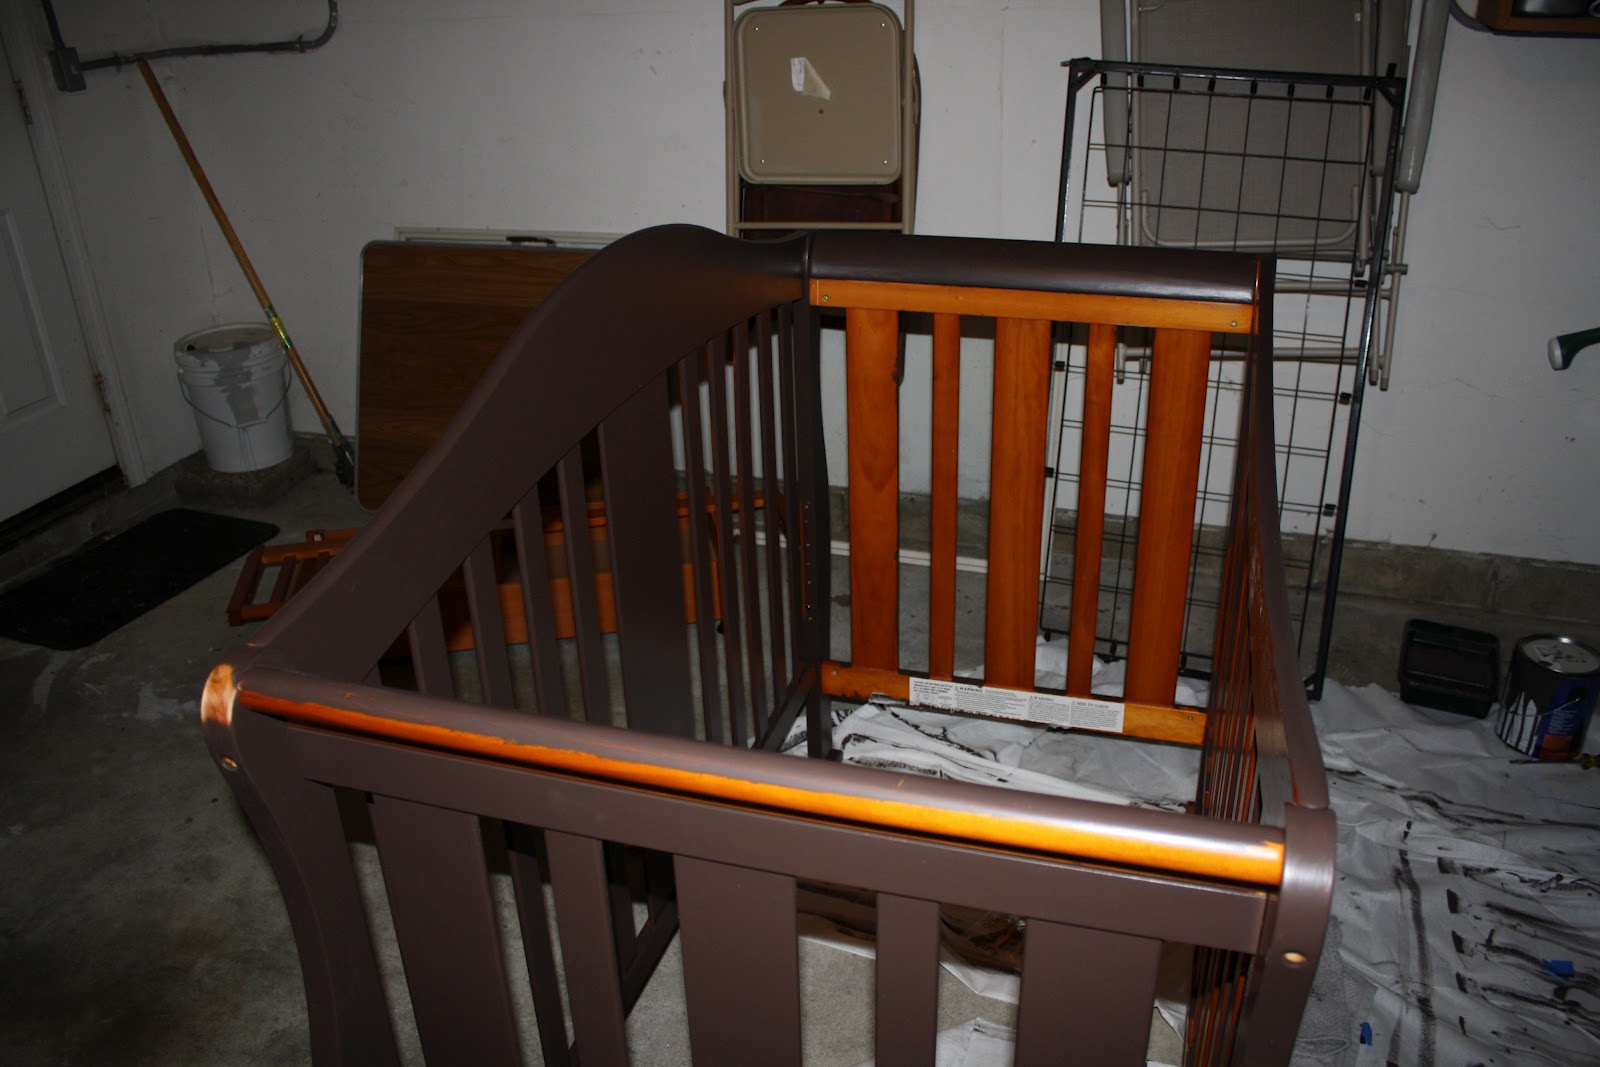 So We Painted Two Or Coats On The Crib With It Assembled This Means That Yes I Had To Sit Inside Get Inner Bars Was Fun